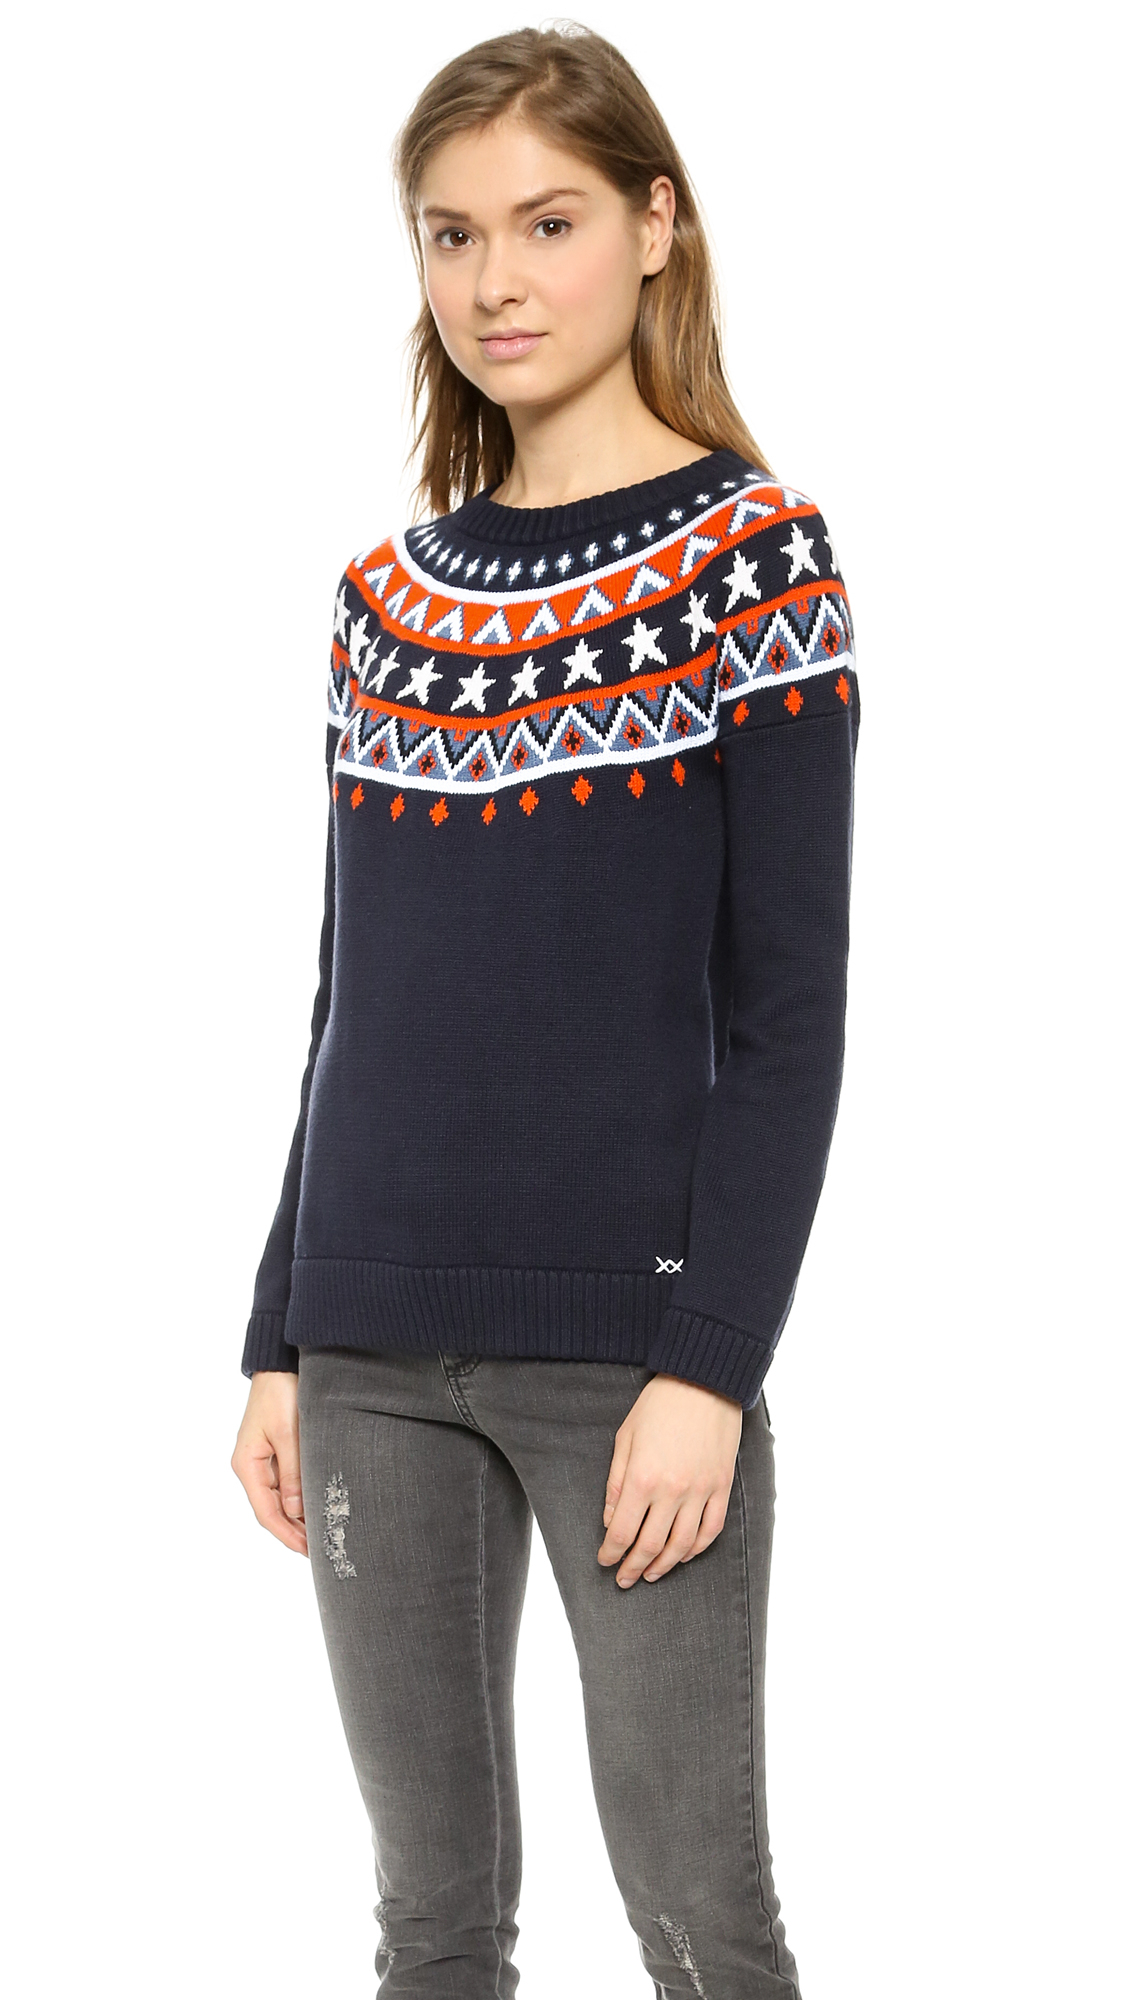 Banjo & matilda Star Fair Isle Sweater - Navy in Blue | Lyst